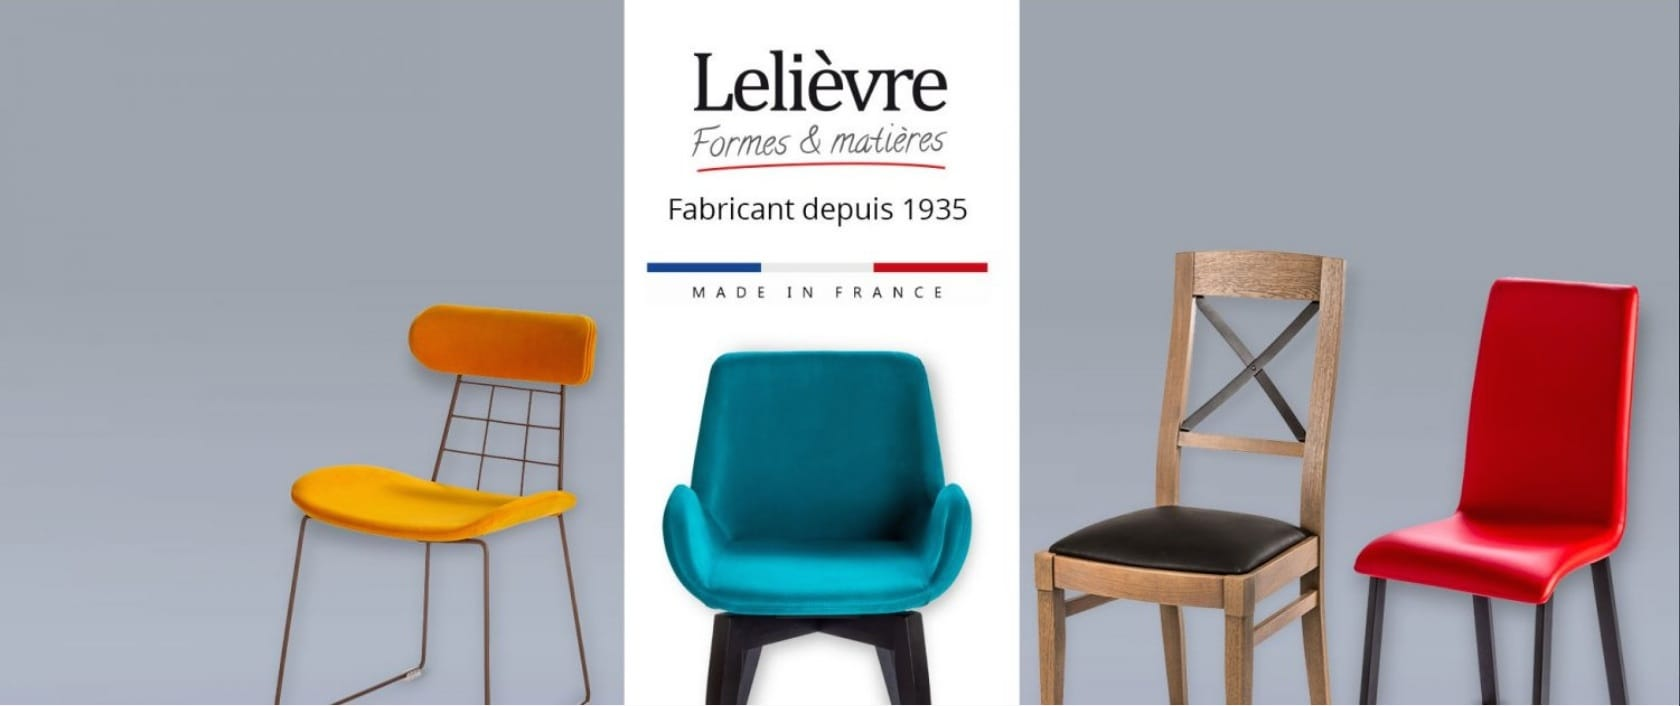 Mobilier design contemporain et chaise design Lelièvre